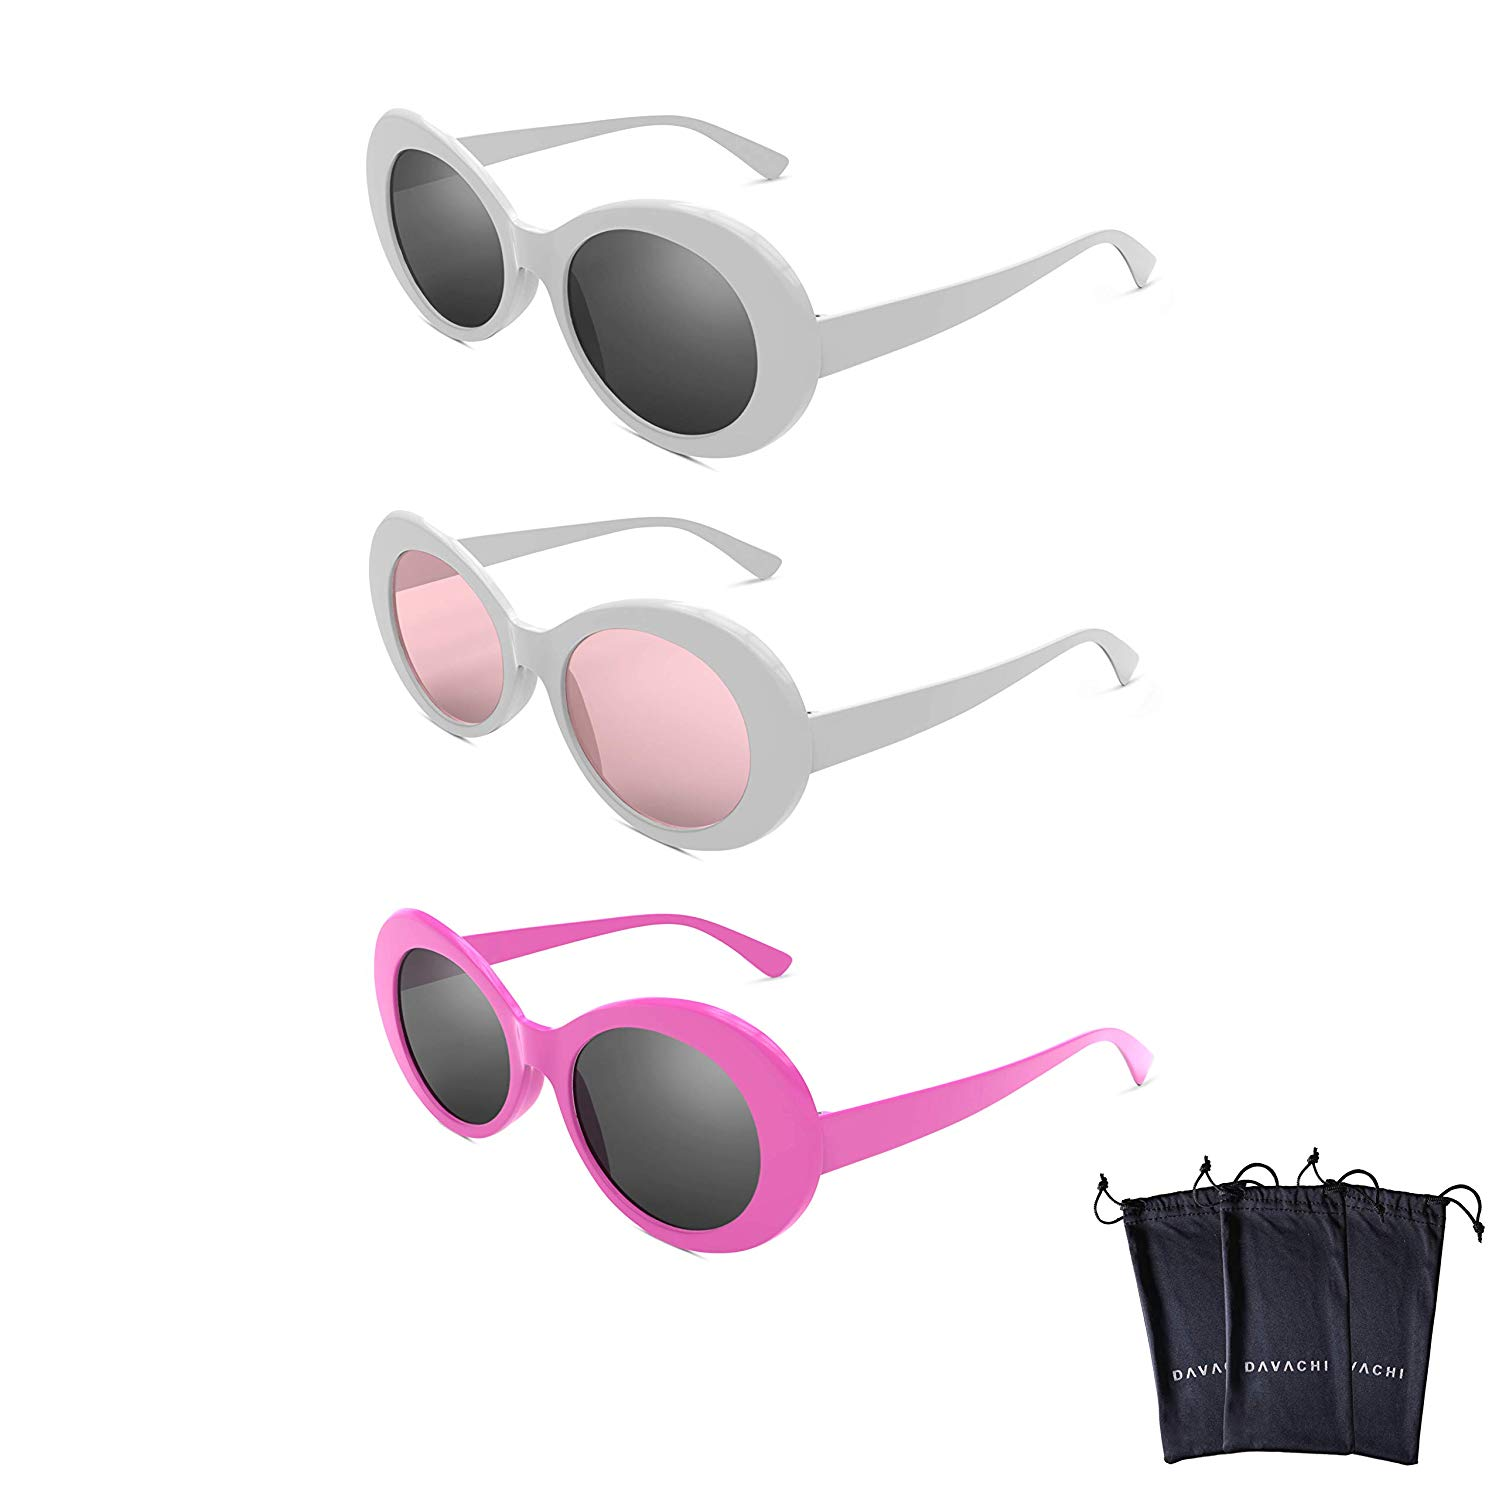 7ee8d321cd Get Quotations · Davachi Clout Goggles Set With Cases Kurt Cobain Oval  Sunglasses White